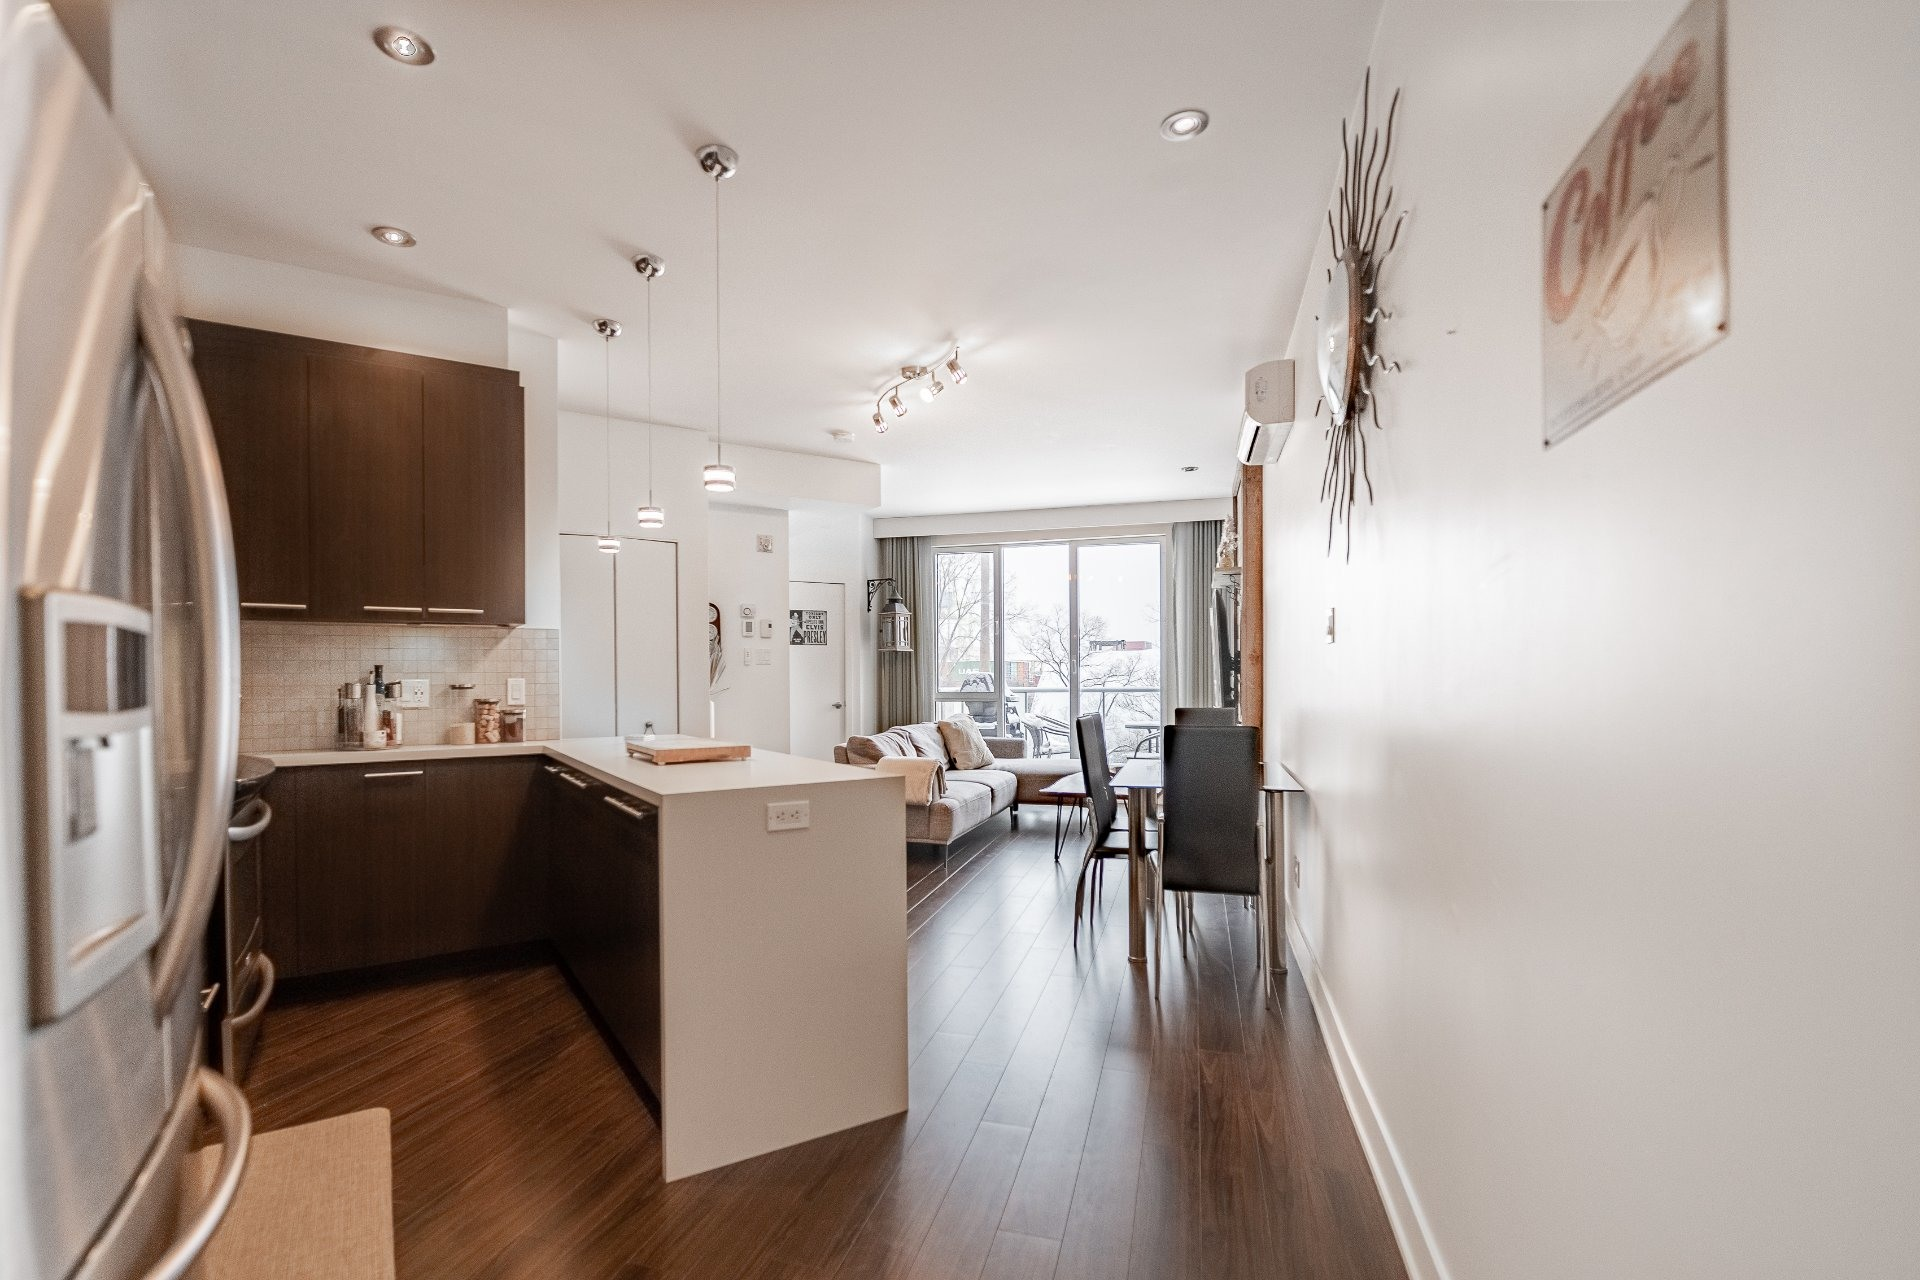 image 17 - Apartment For sale Mercier/Hochelaga-Maisonneuve Montréal  - 5 rooms